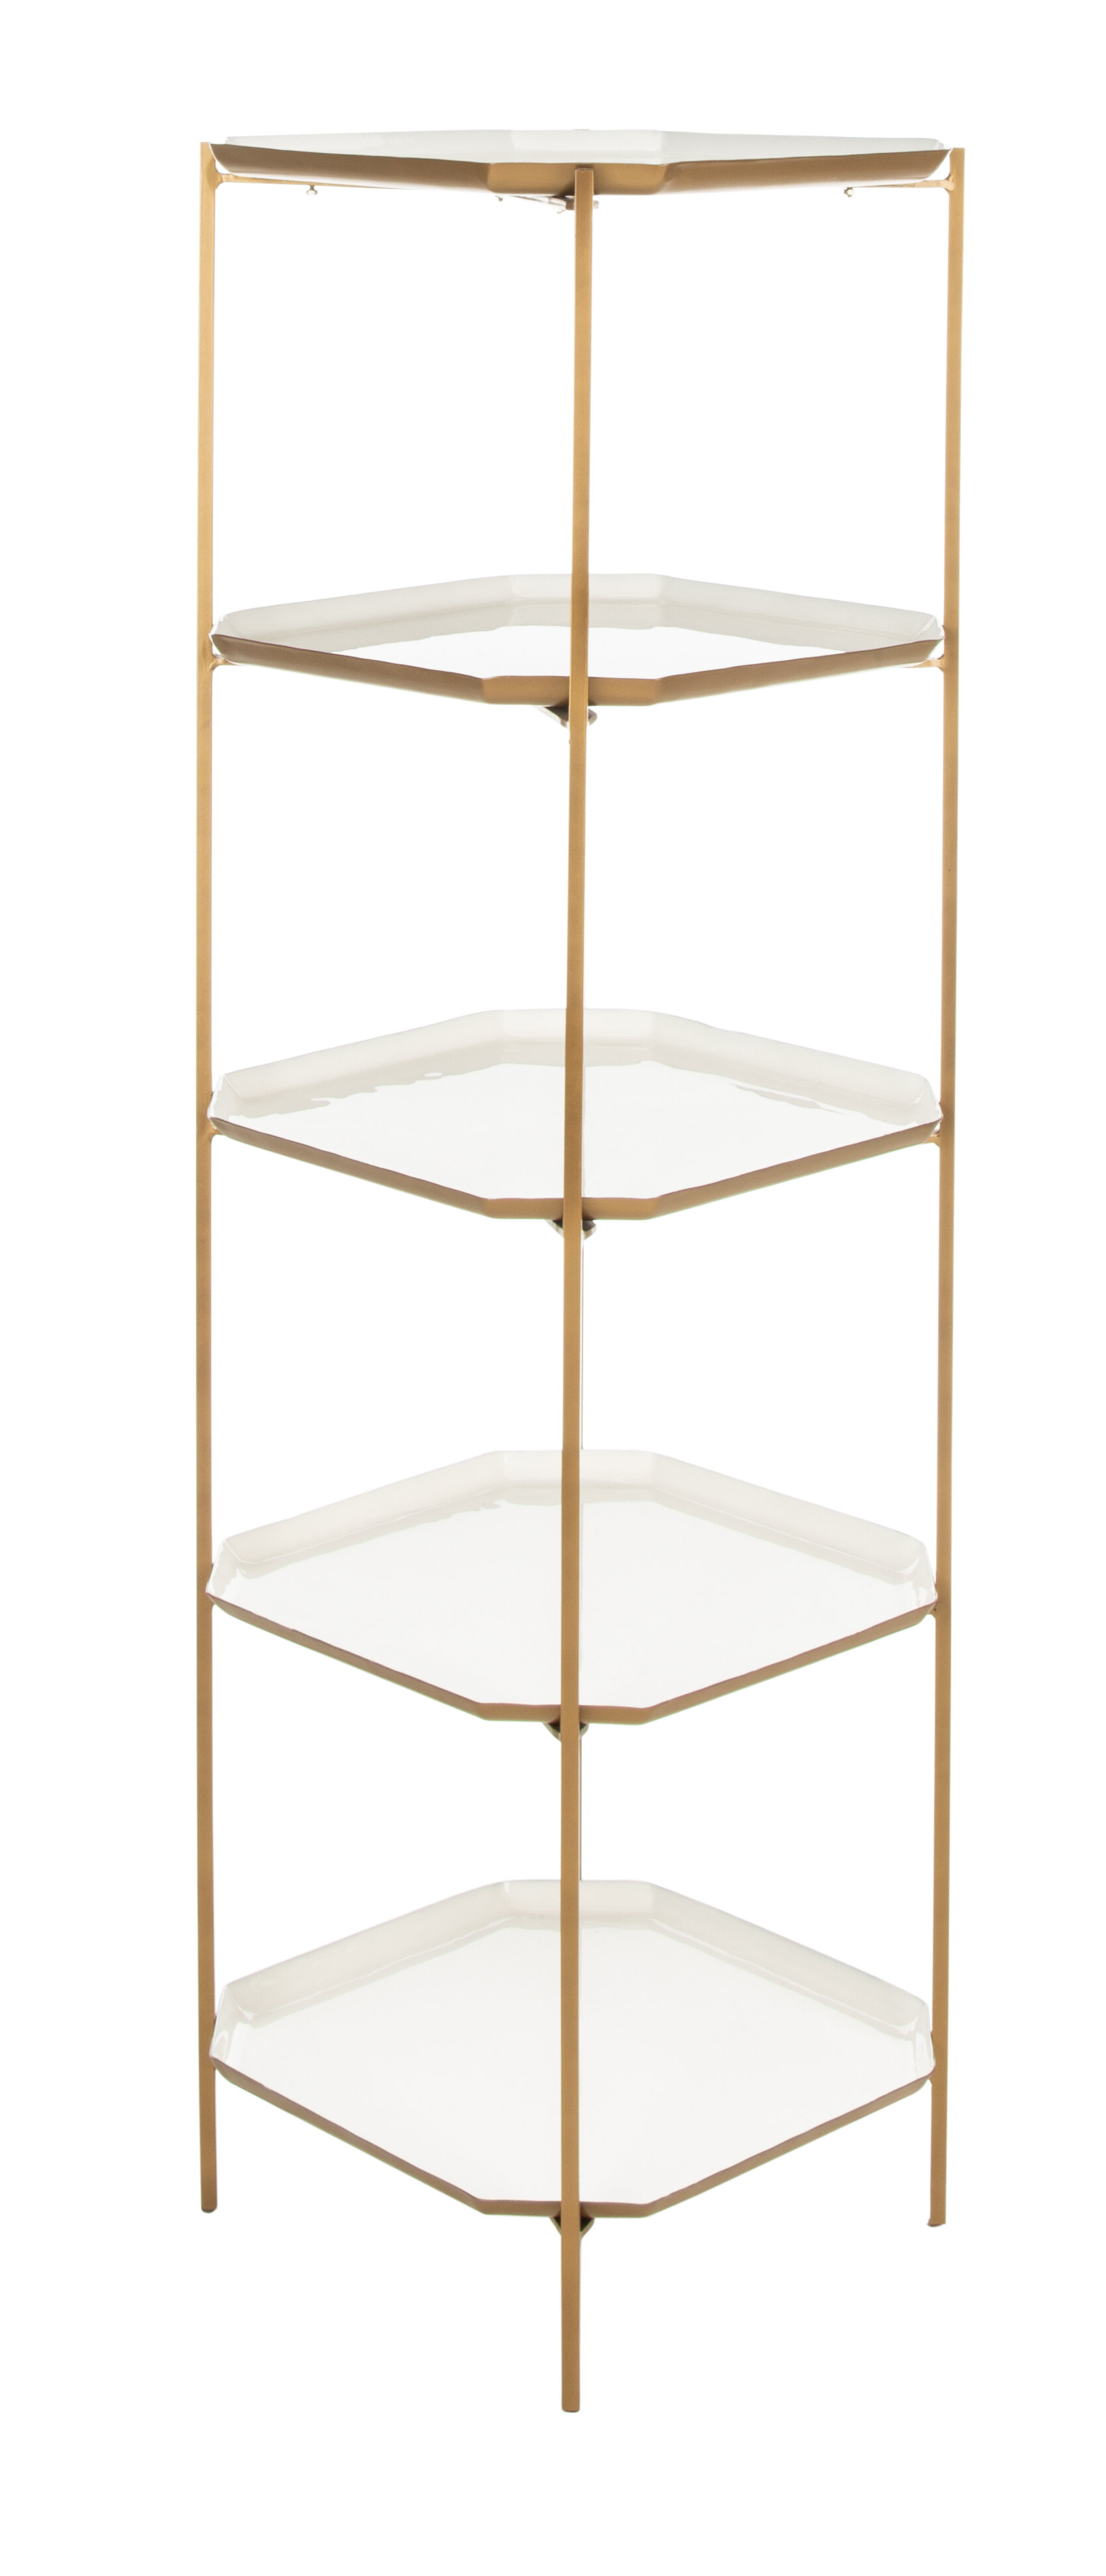 2020 Merced 5 Tier Etagere Bookcase With Macon Etagere Bookcases (View 1 of 20)